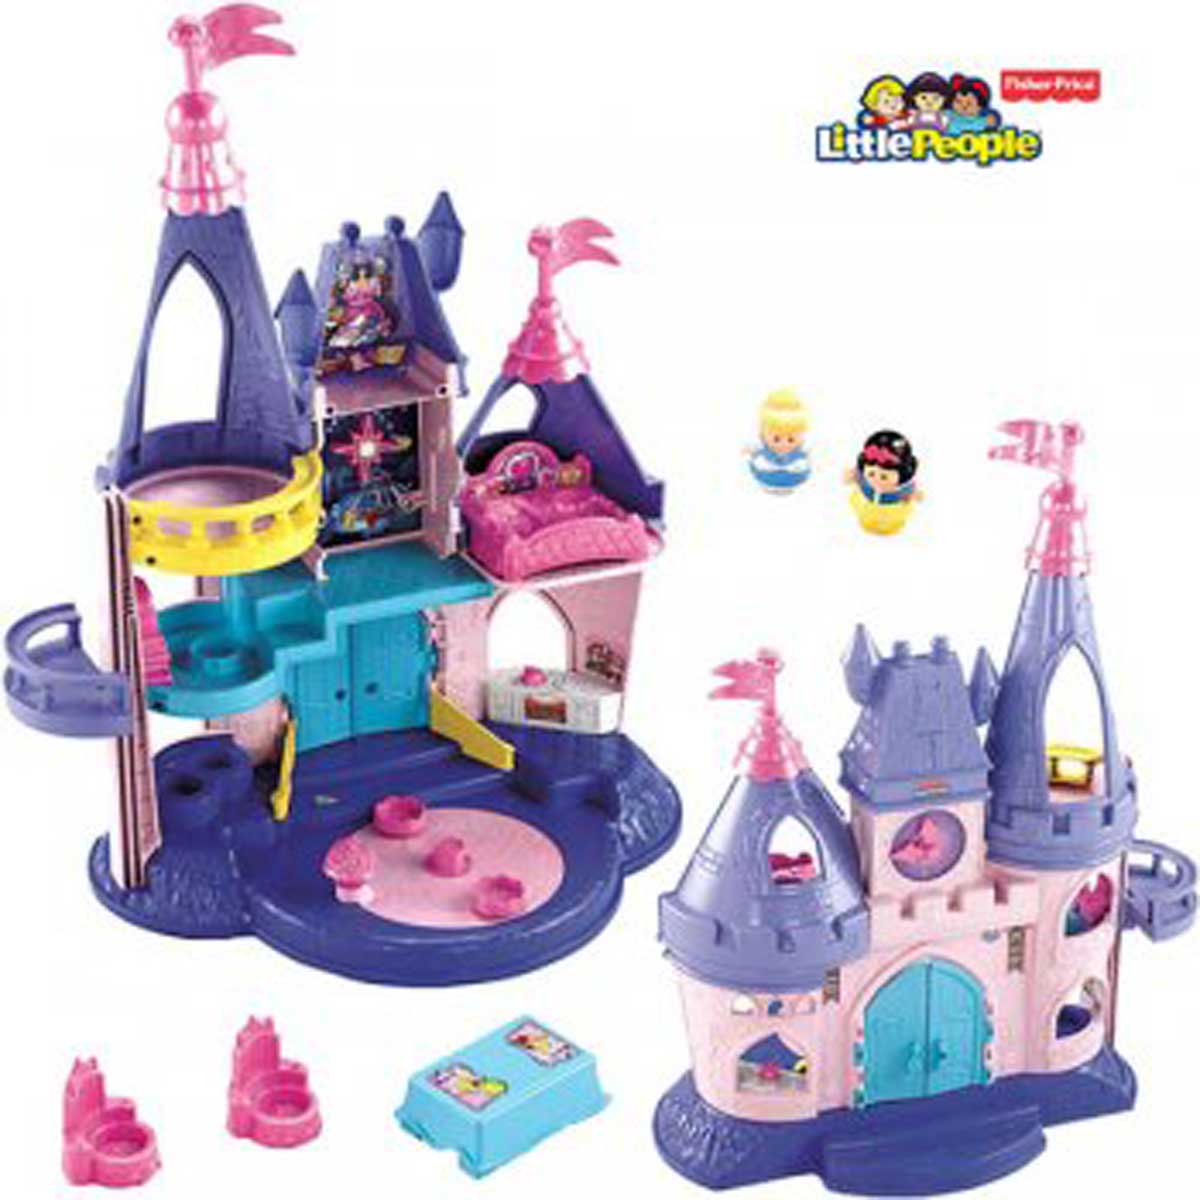 fisher price little people disney princess prinzessinnen schloss x8488 7405 ebay. Black Bedroom Furniture Sets. Home Design Ideas